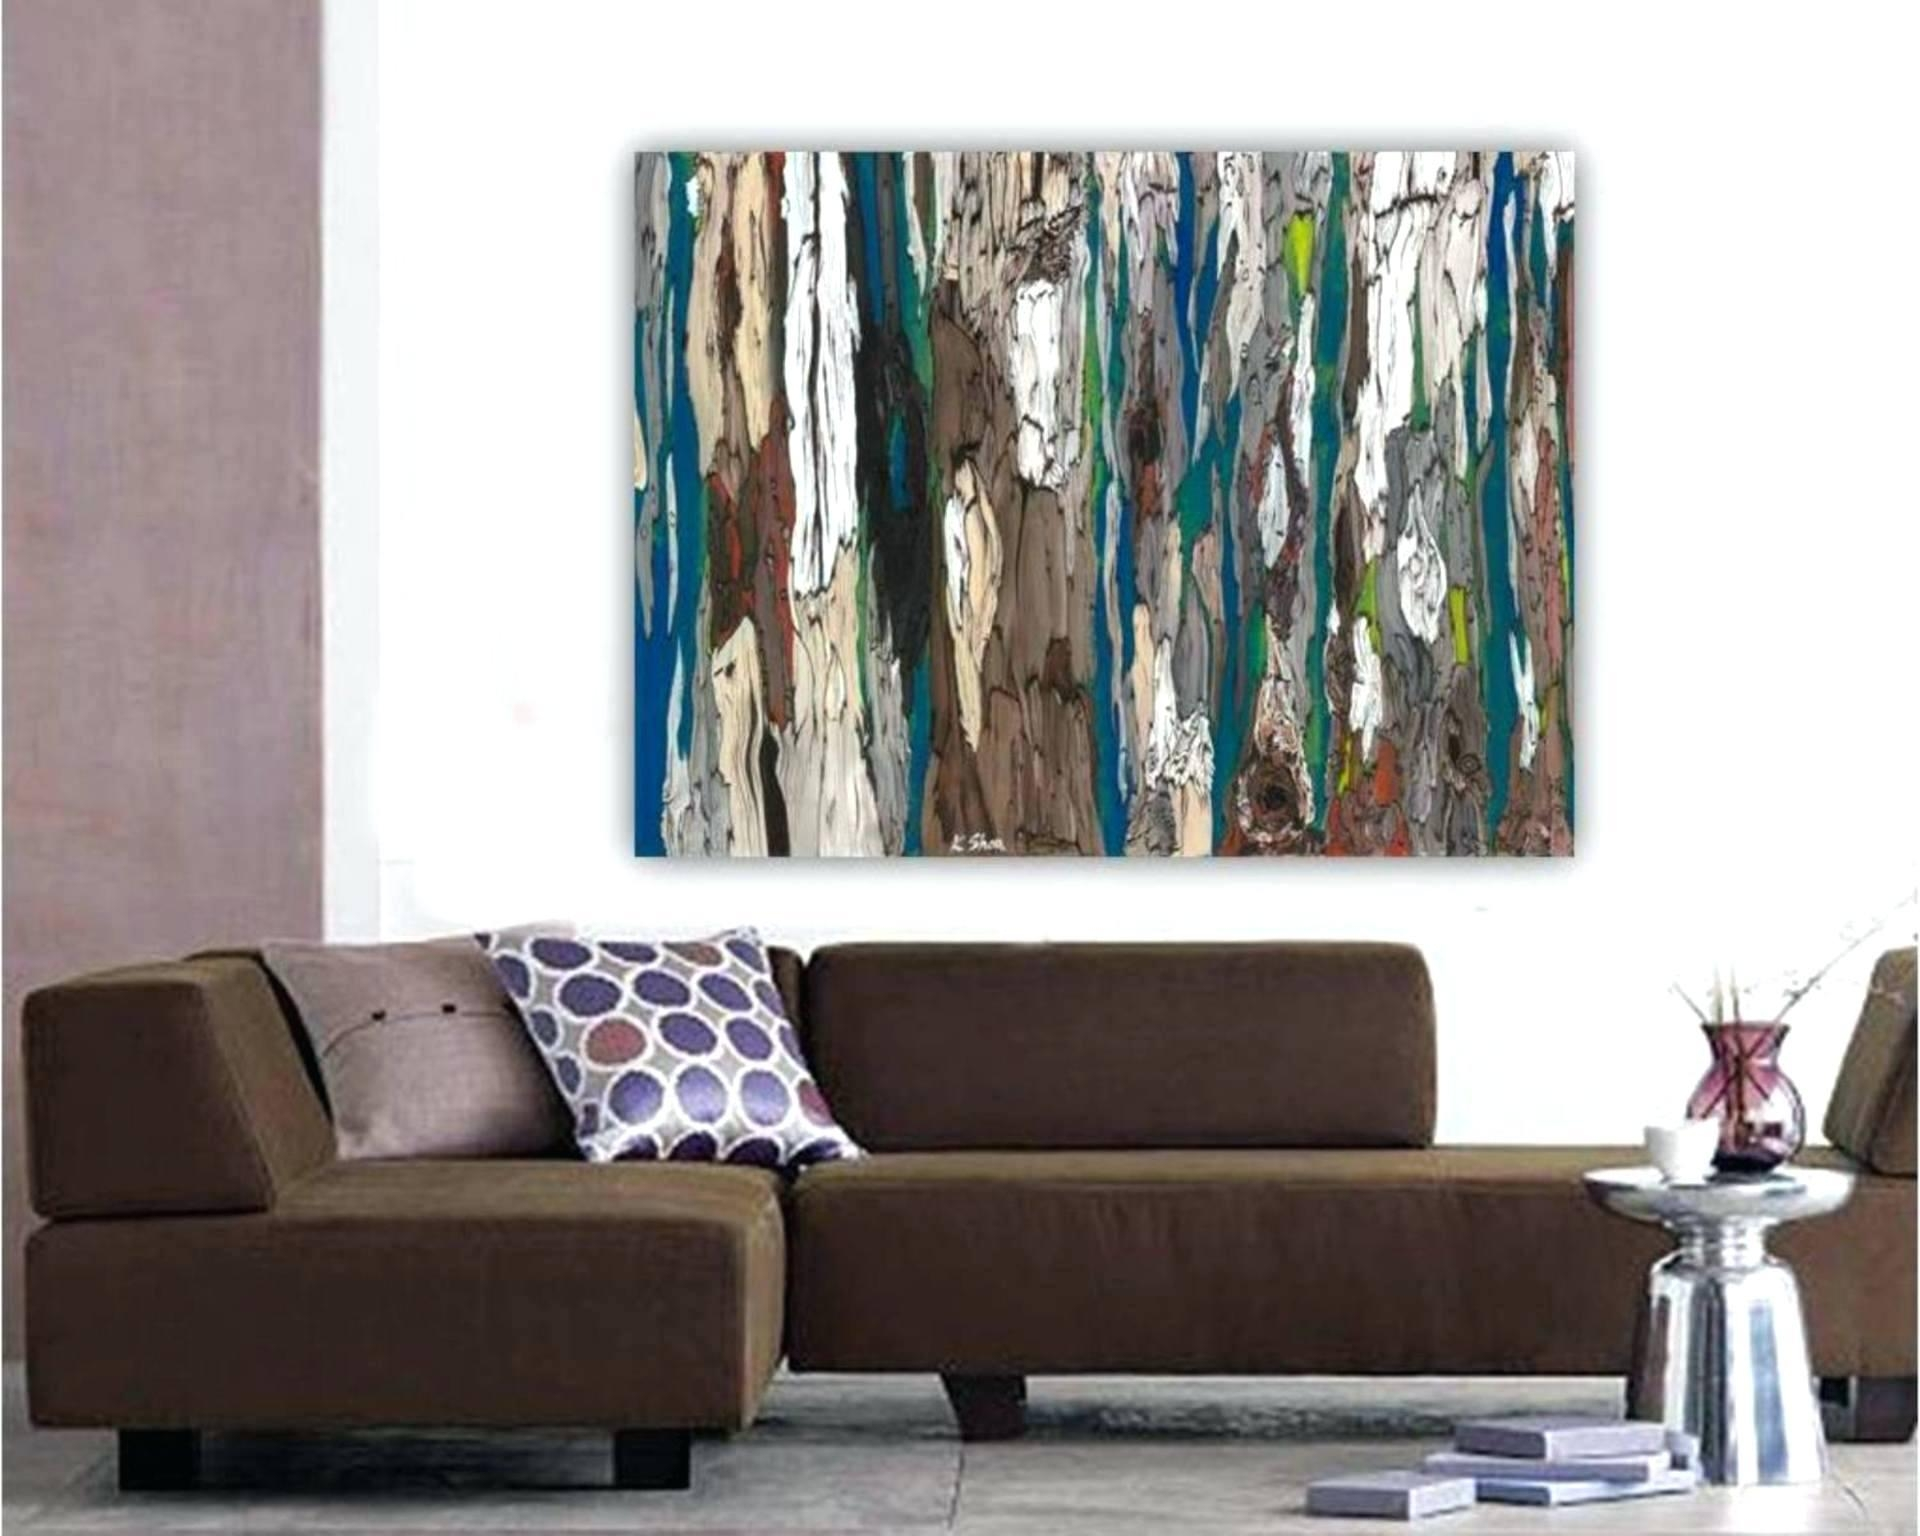 Wall Ideas : Large Abstract Wall Art Nz Large Abstract Wall Art Inside Large Teal Wall Art (Image 19 of 20)